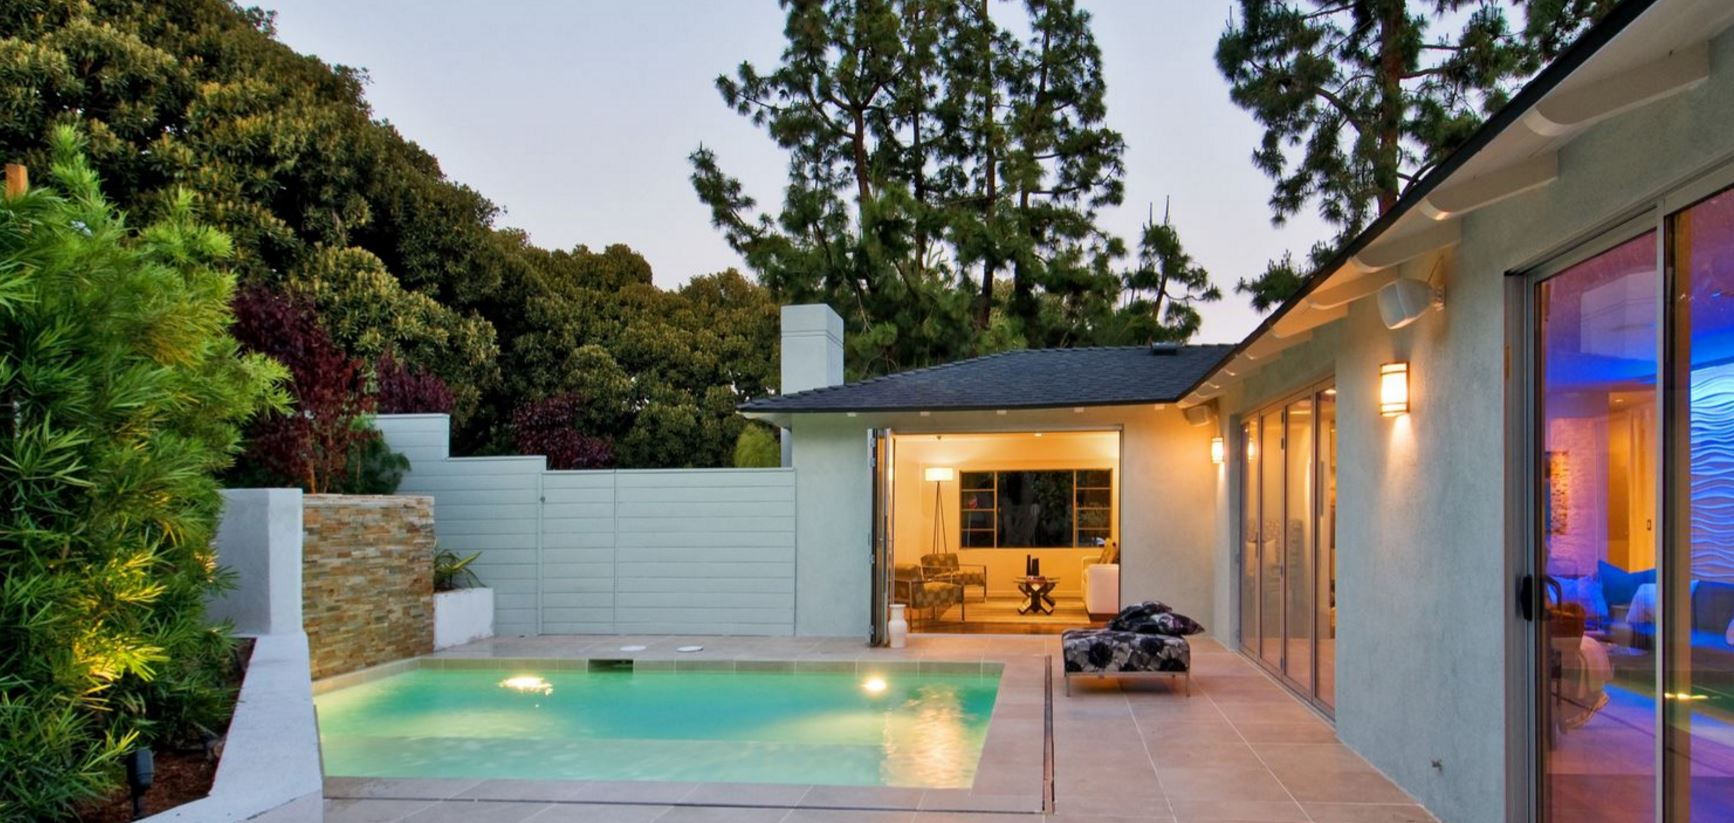 3 Bedroom Los Feliz Poolside Villa